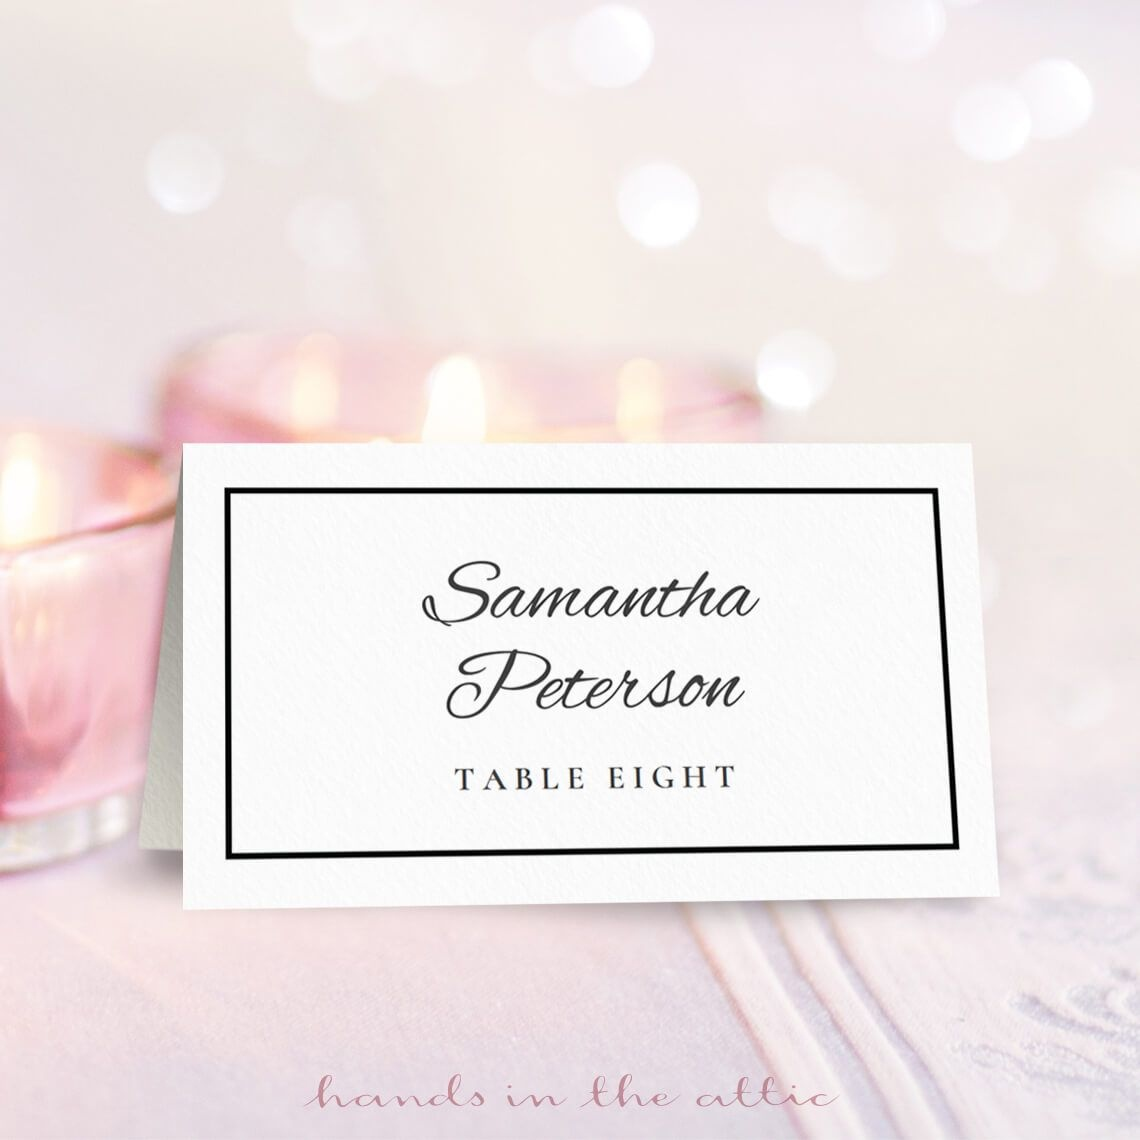 Wedding Place Card Template   Free On Handsintheattic   Free - Free Printable Damask Place Cards